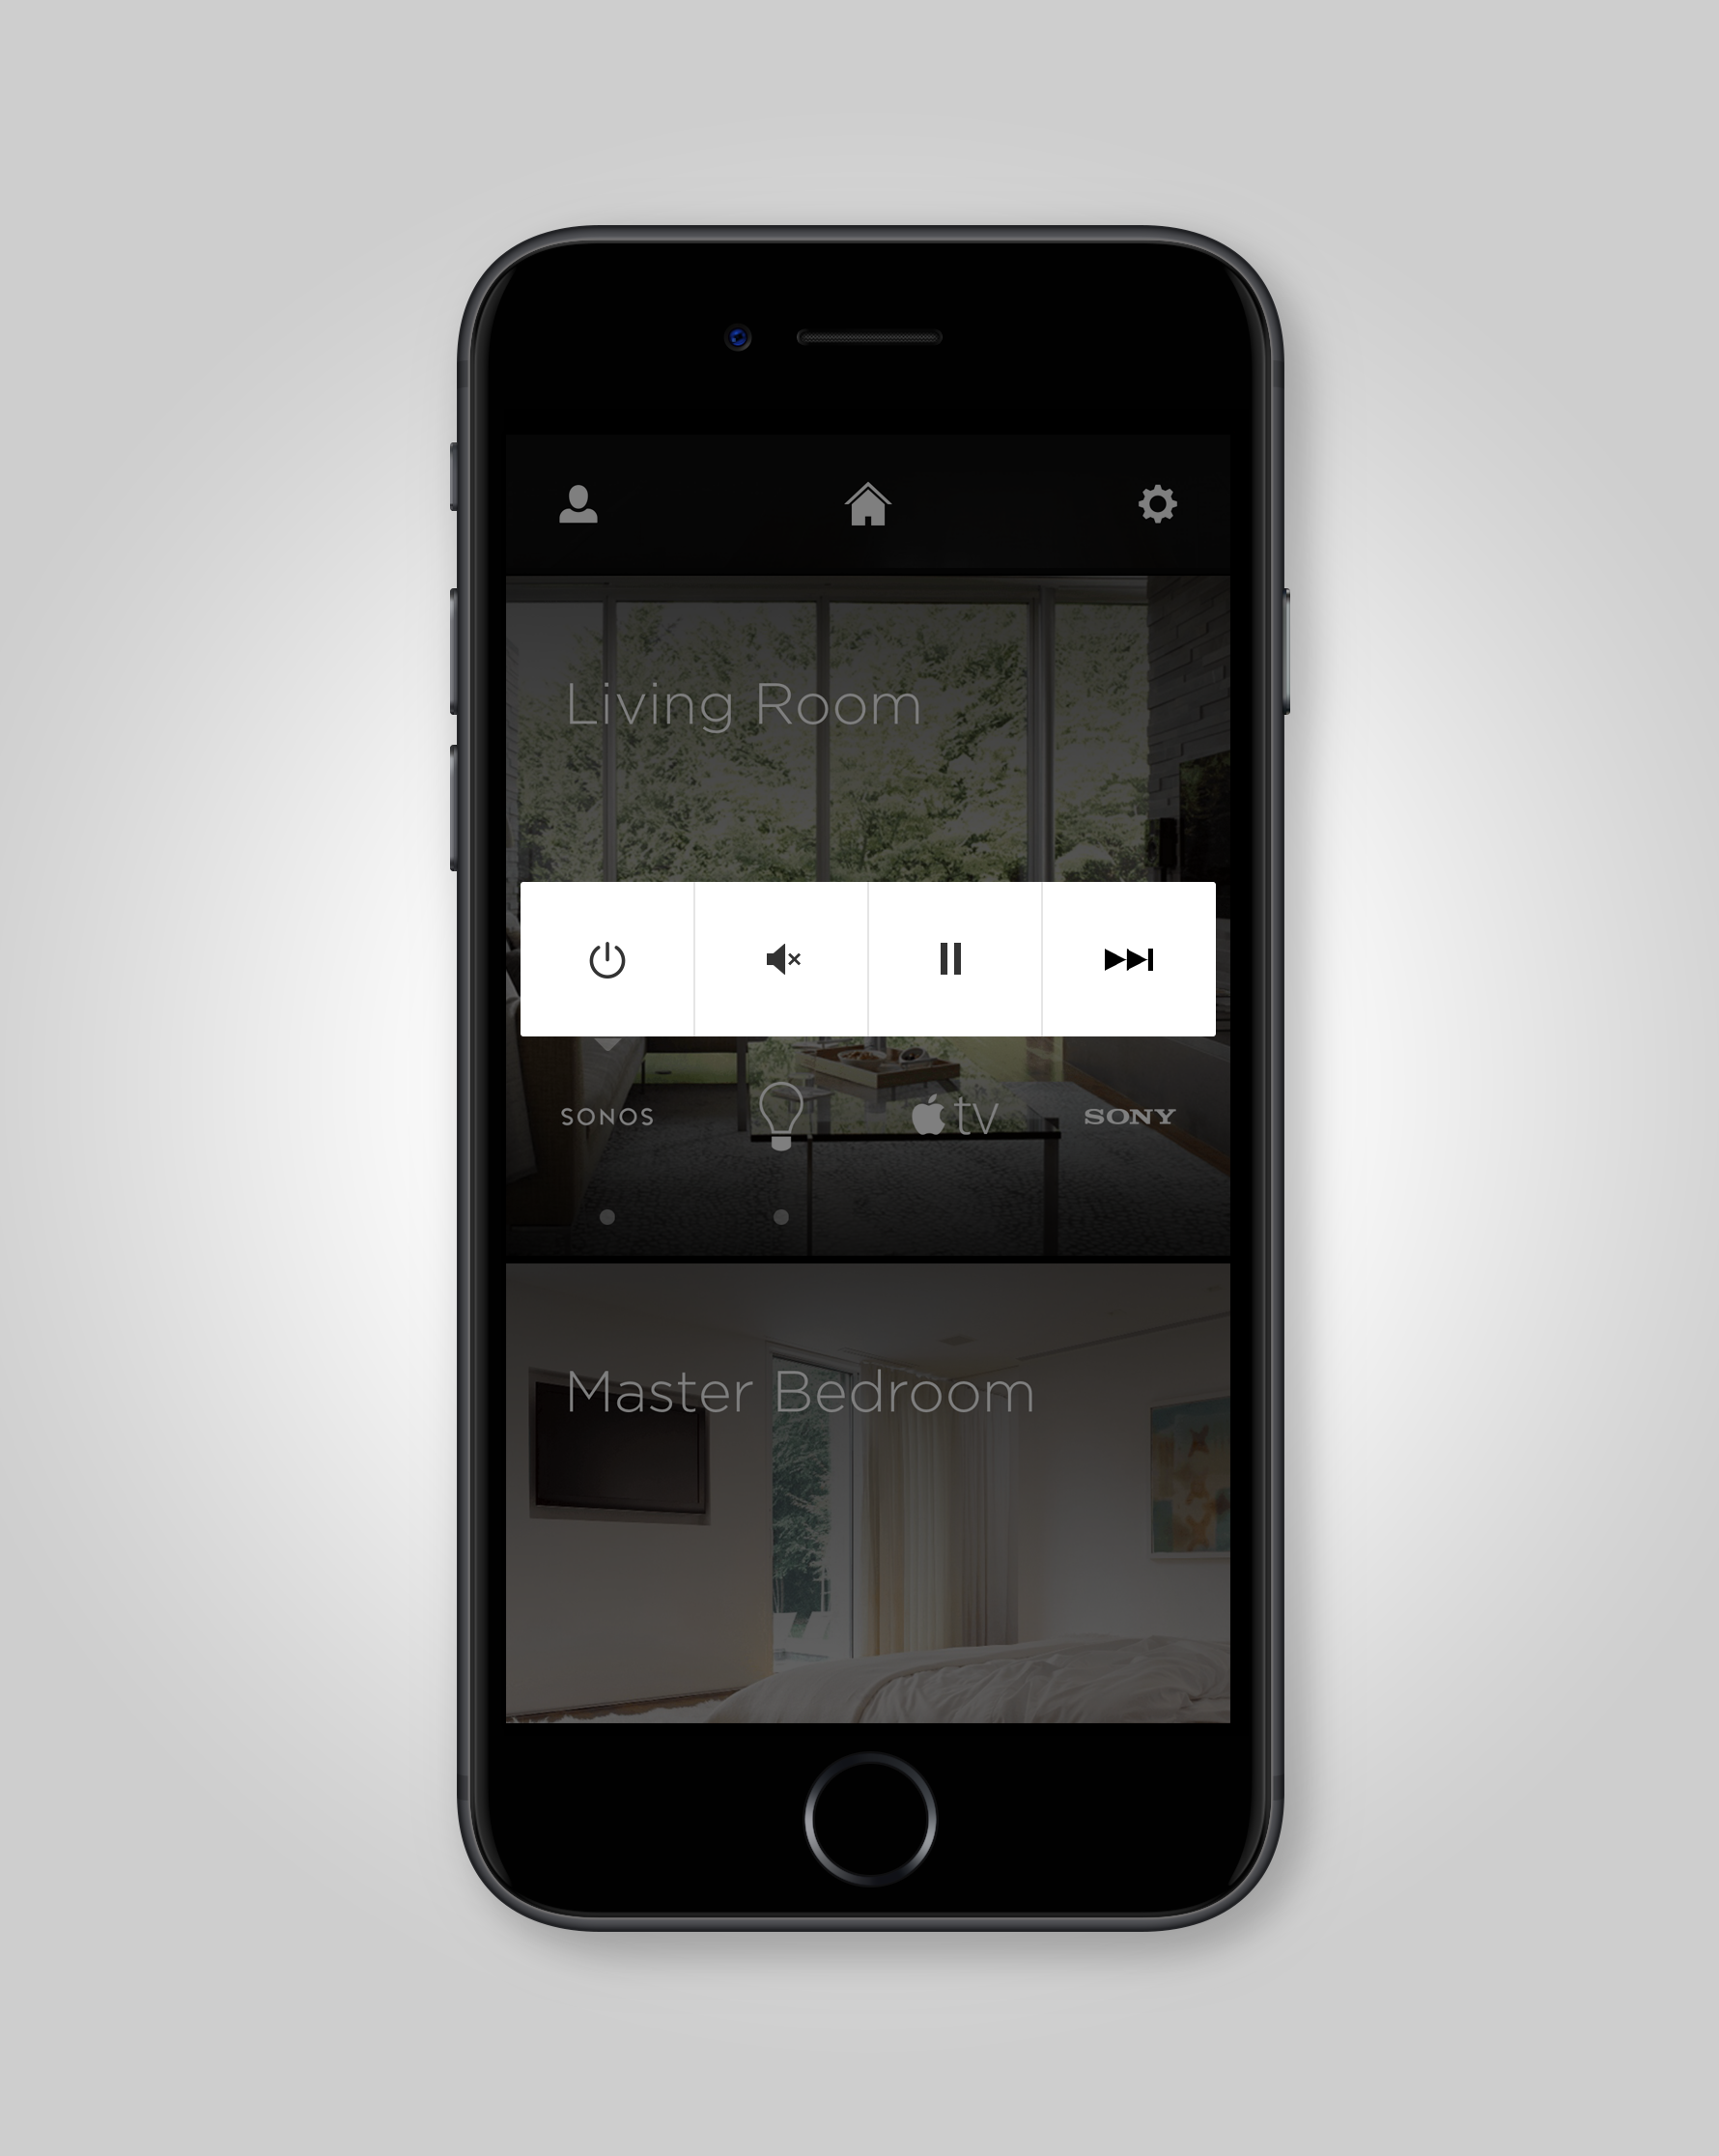 Iphone Rooms microinteraction.png